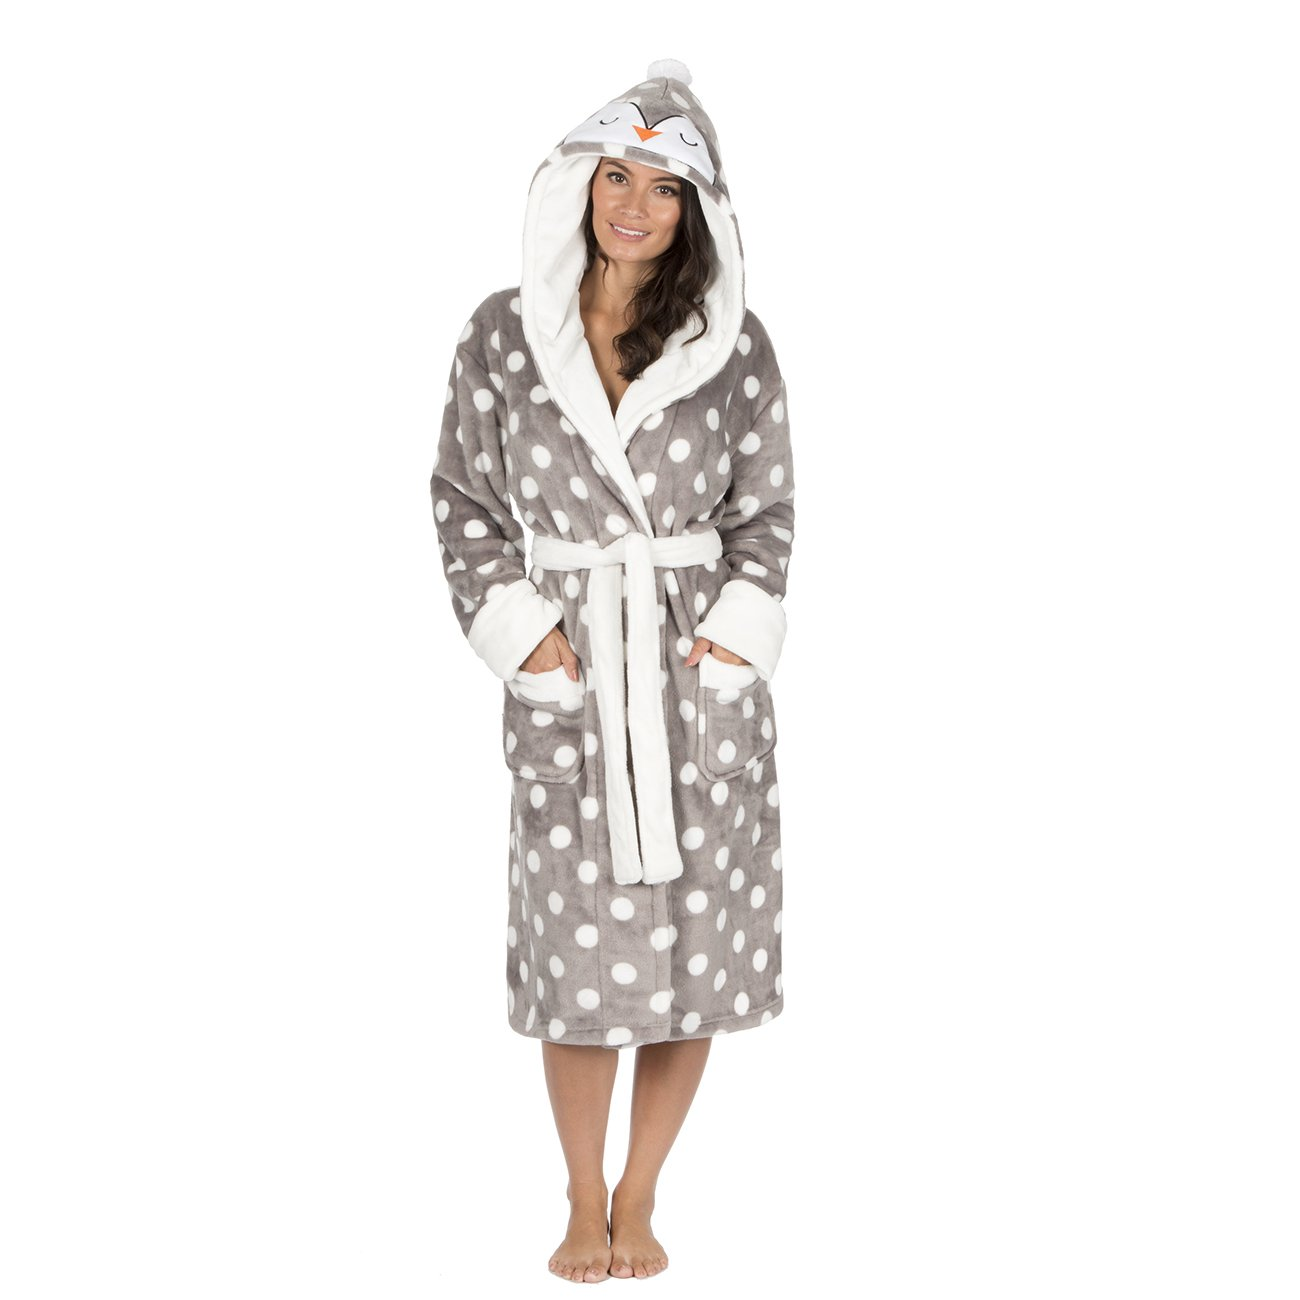 b4c4dae15 Ladies Christmas Spot Fleece Dressing Gowns with Animal Hood. Red Reindeer  or Grey Penguin. Sizes S M L XL